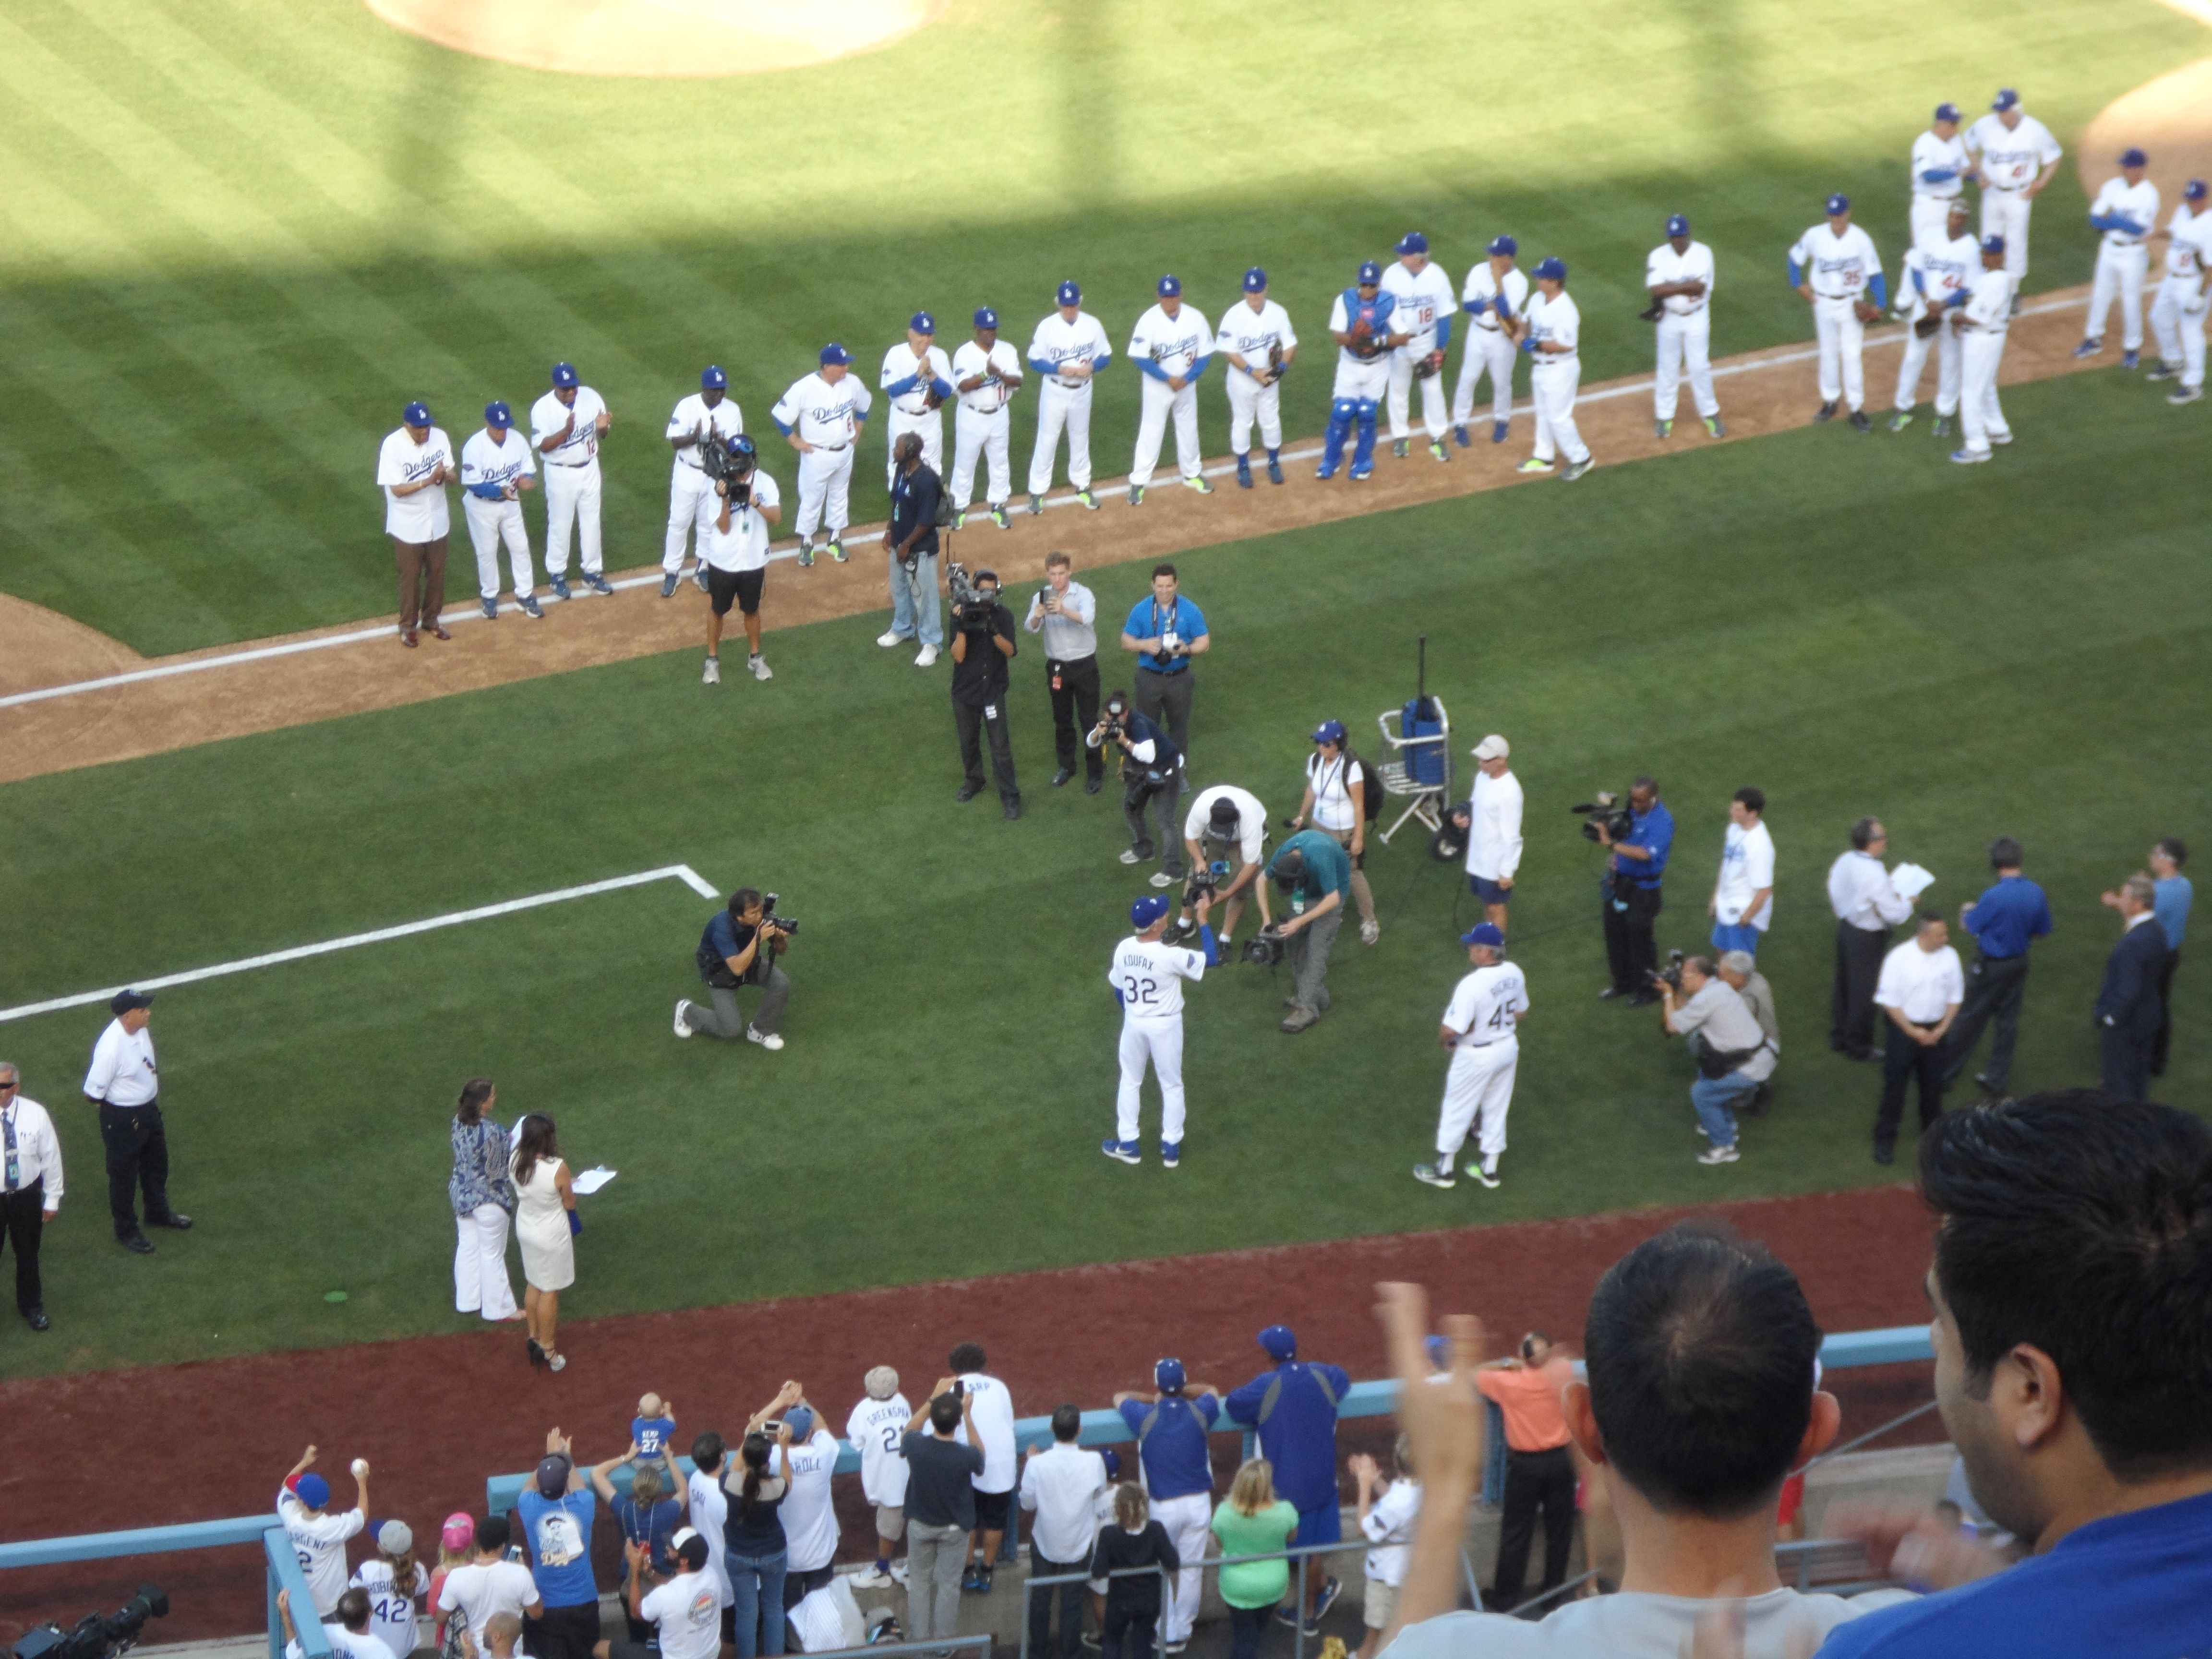 Old Timers Game June 8th 2013  Sandy Koufax being announced